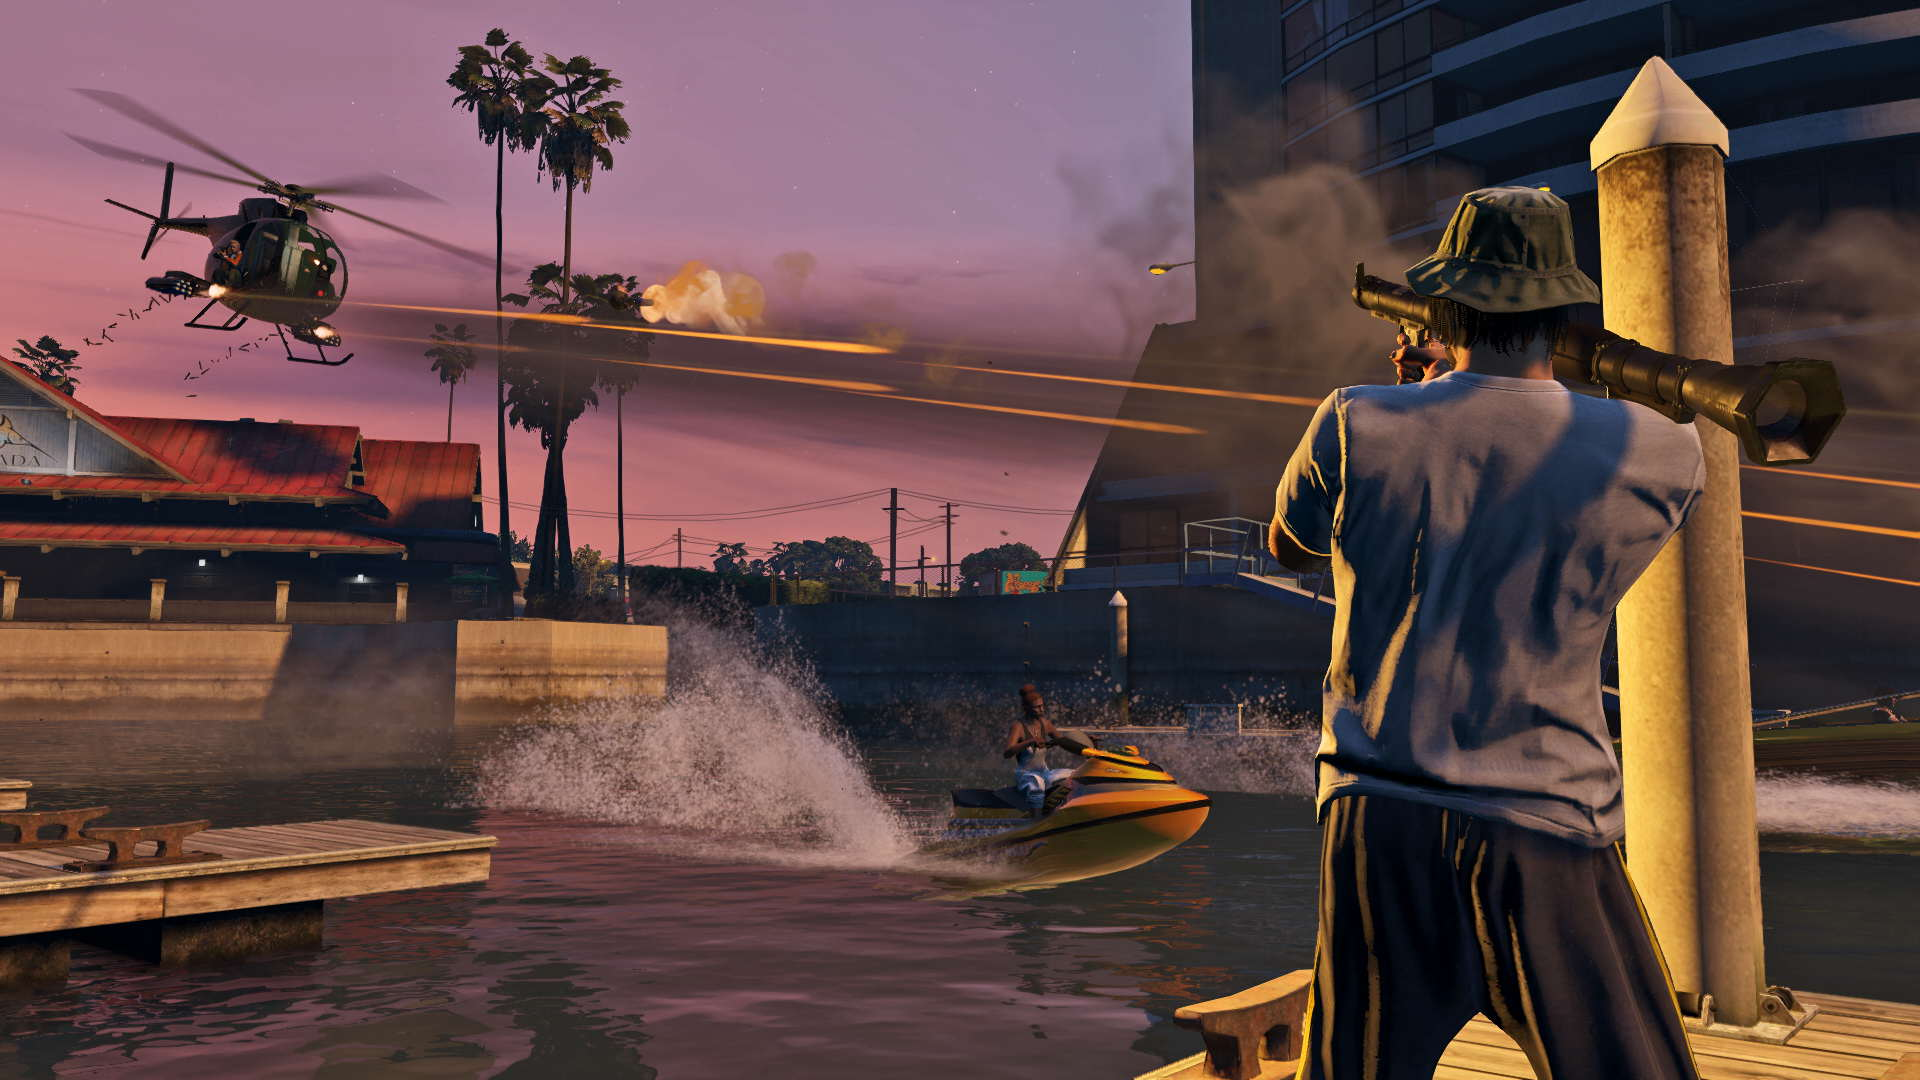 RSG GTA Online NG Screenshot 017.0 GTA Online More Popular Than Ever, Still Making The Big Bucks